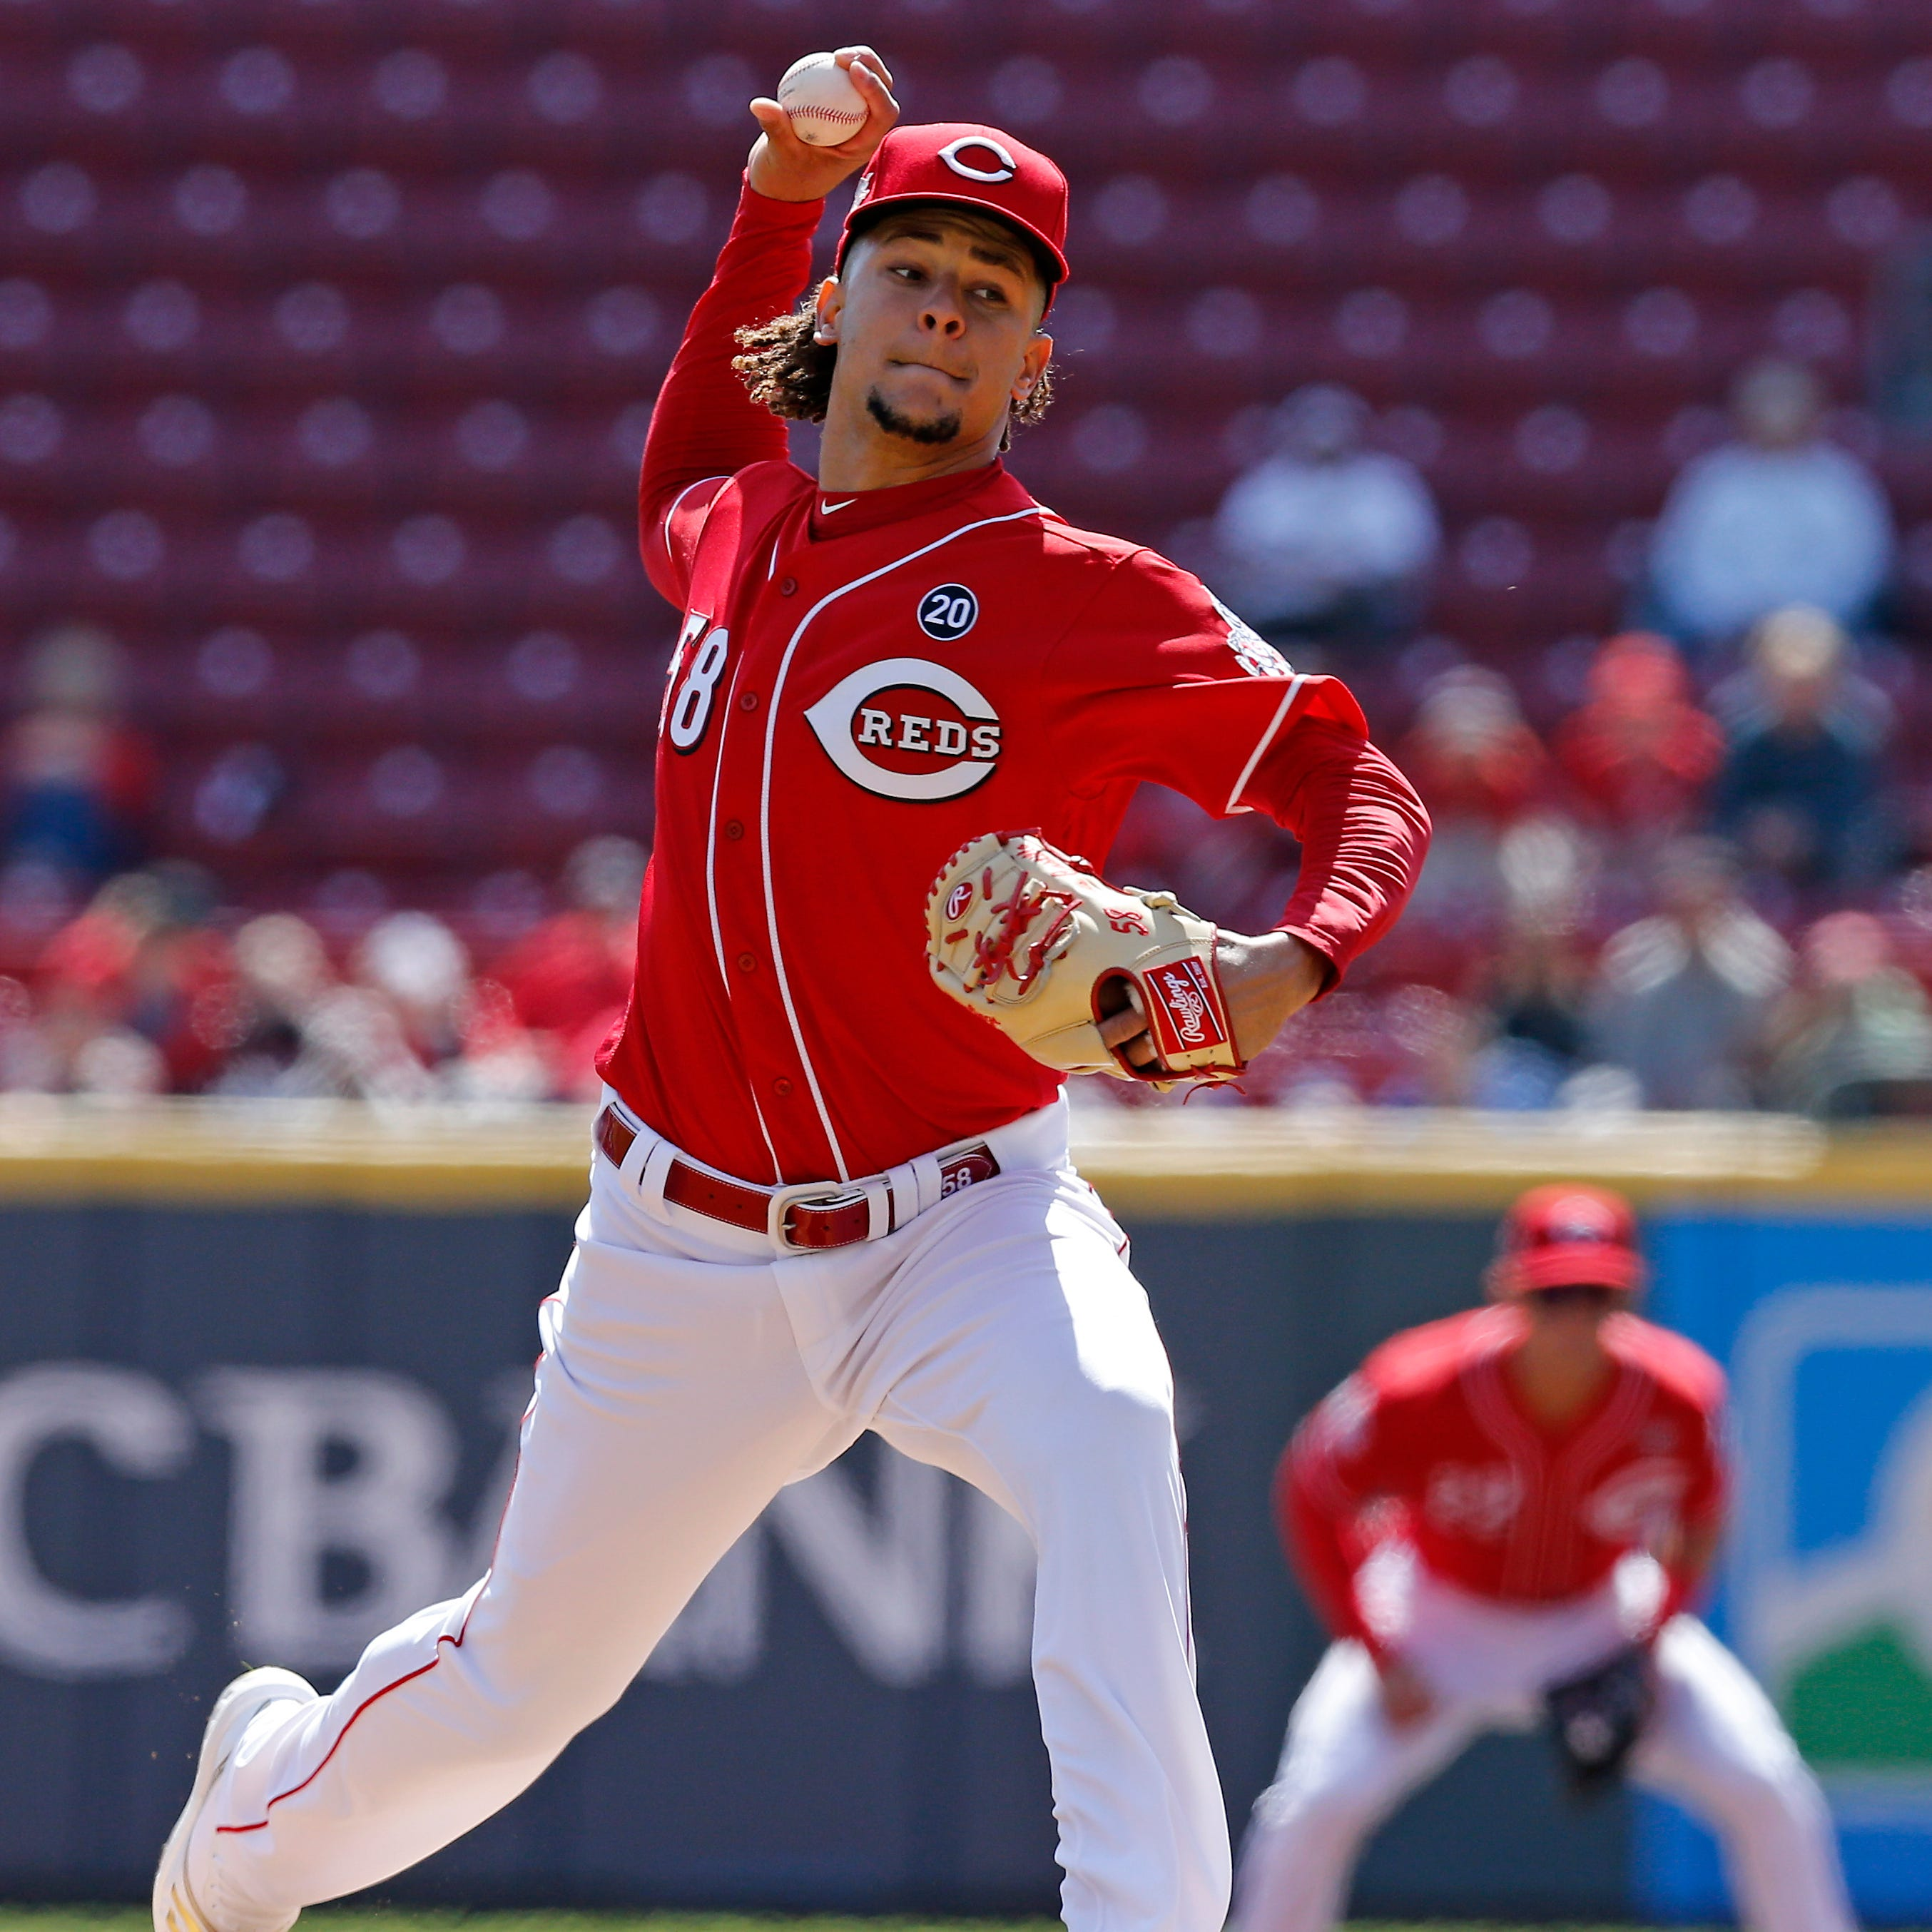 Paul Daugherty: When you look to the Cincinnati Reds' future, who do you see?